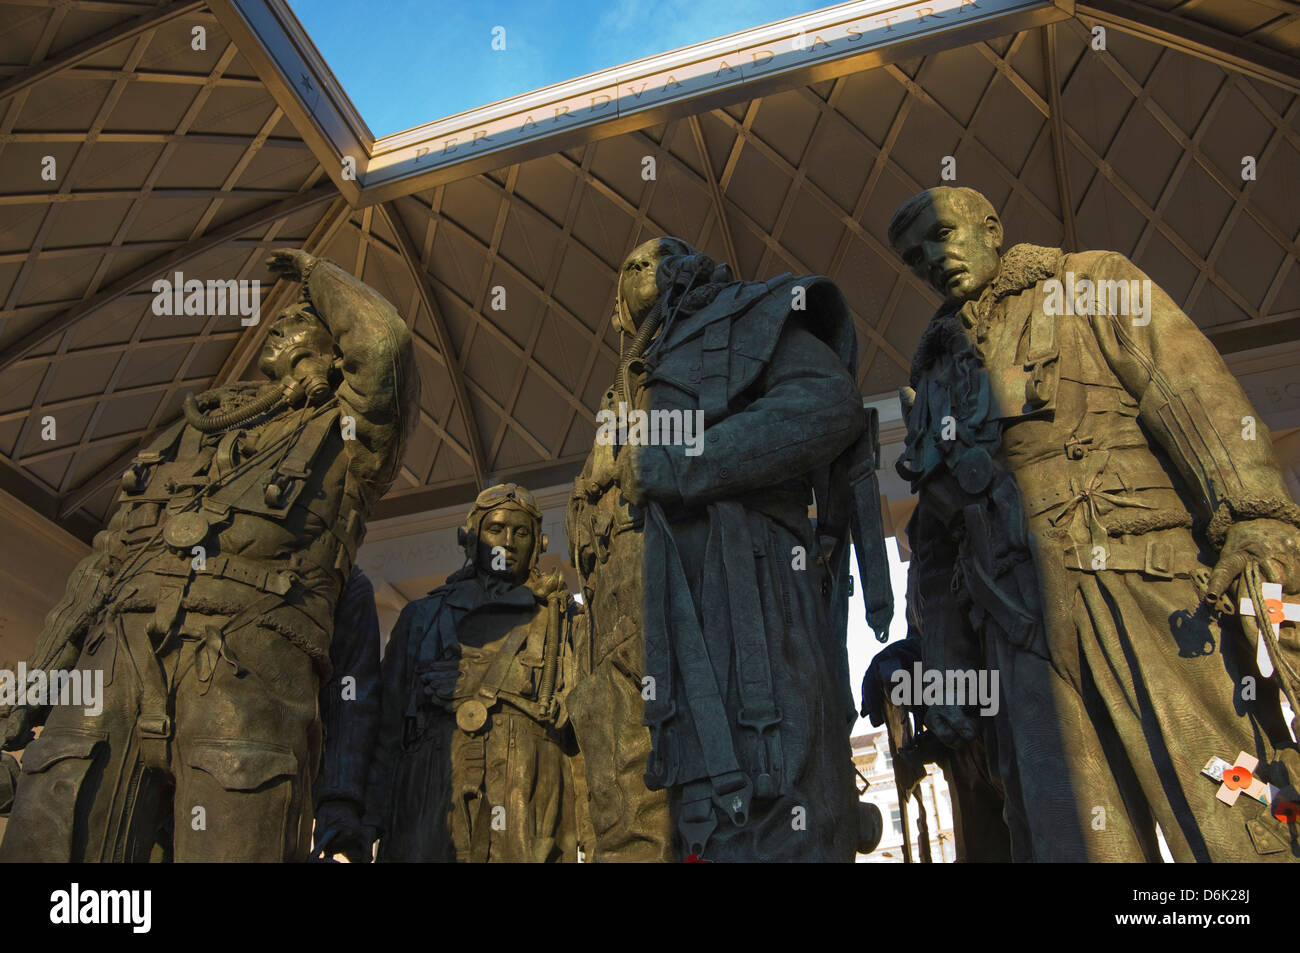 Interior of the Monument to the Royal Air Force Bomber Command, Piccadilly, London, England, UK - Stock Image